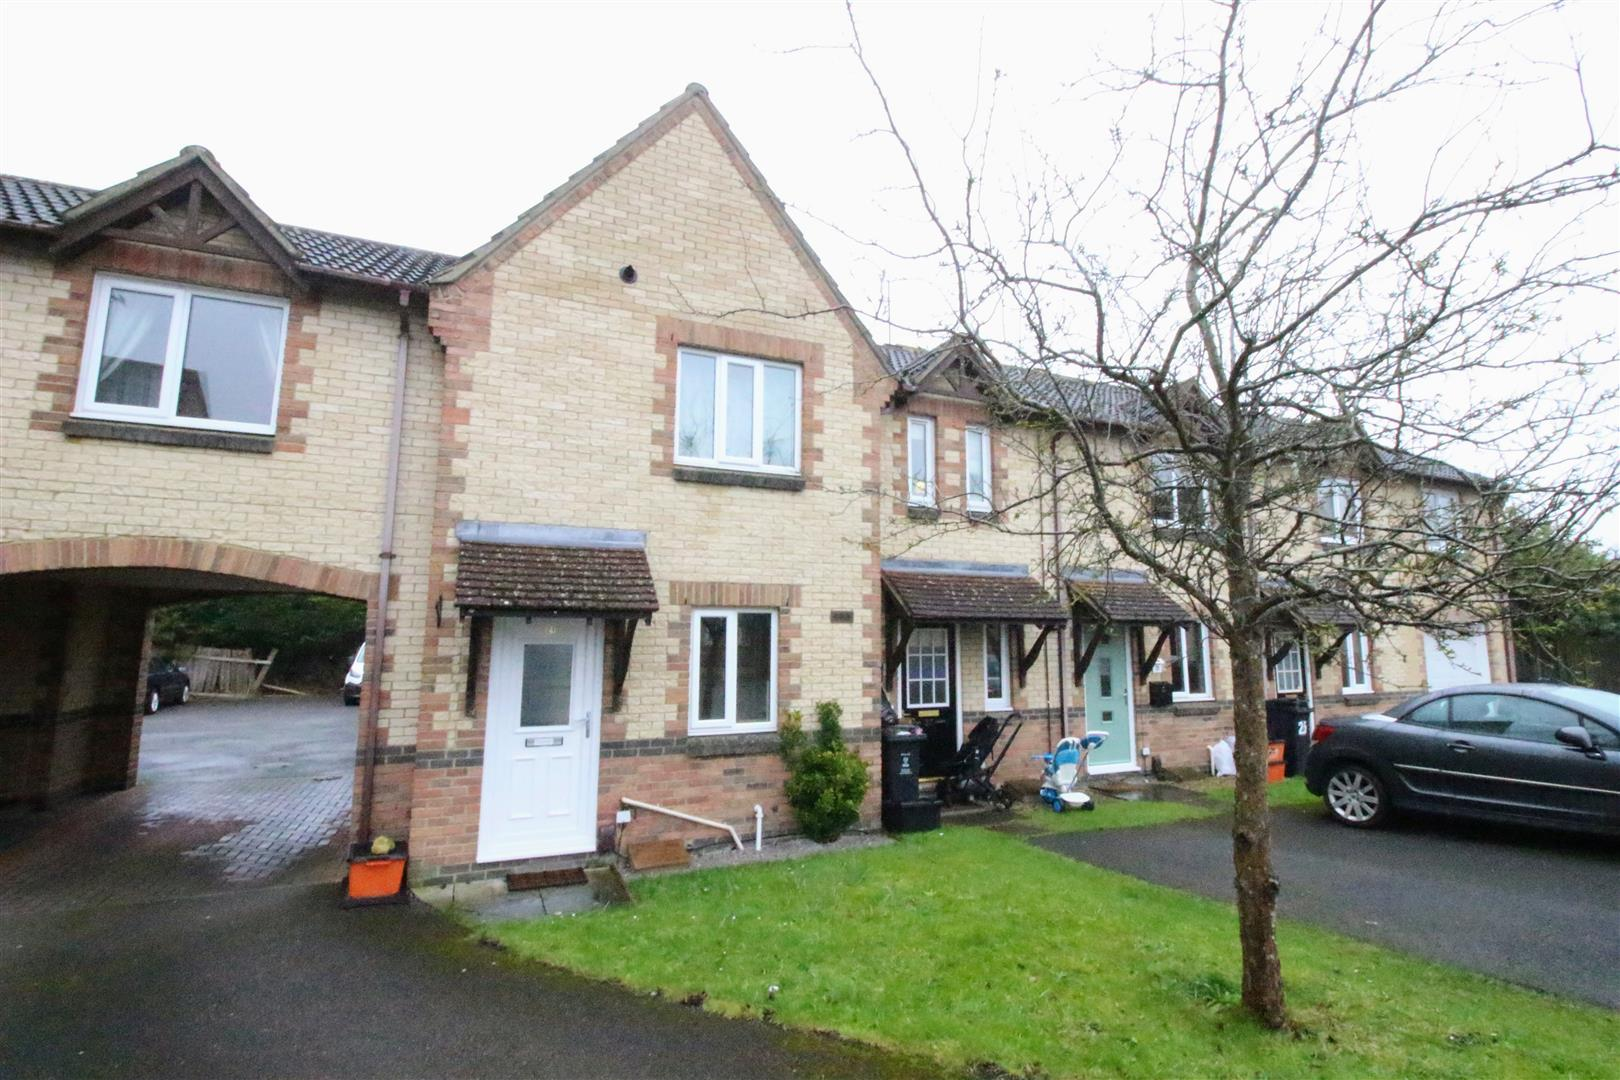 2 Bedrooms Terraced House for sale in Pritchard Close, Upper Stratton, Swindon